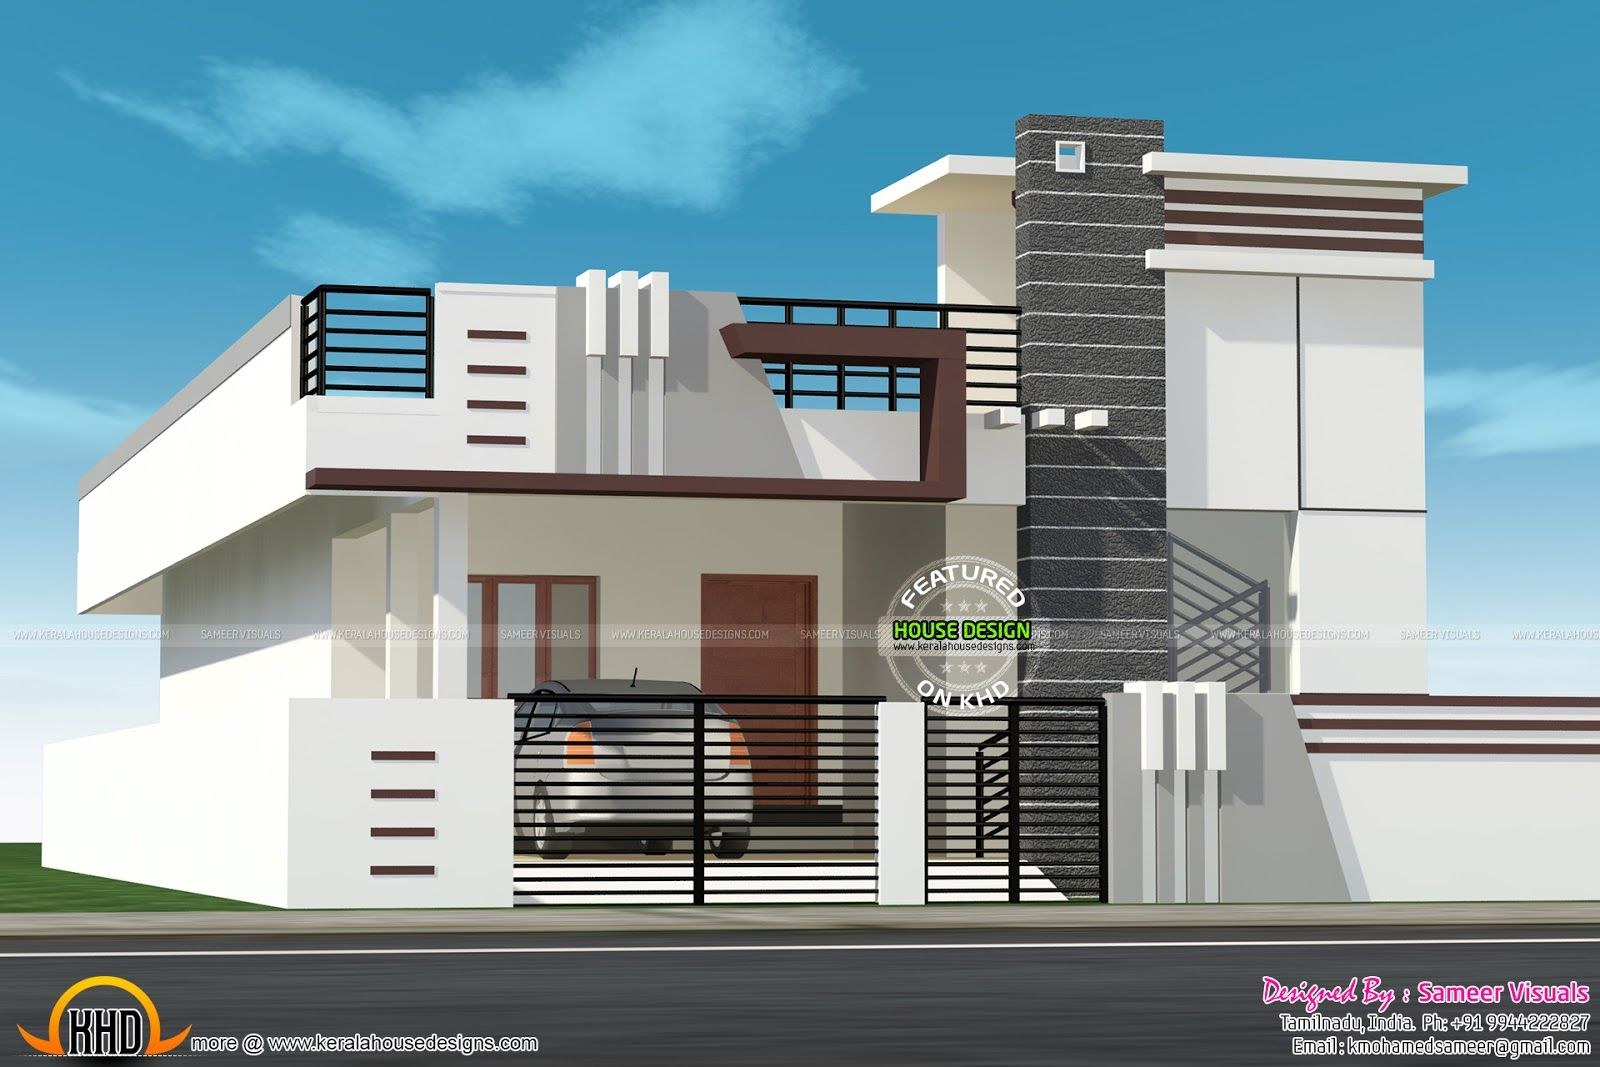 7012cdc67faaf1eb27ad07e2d27882de - Download Small Modern House Designs In Tamilnadu  PNG